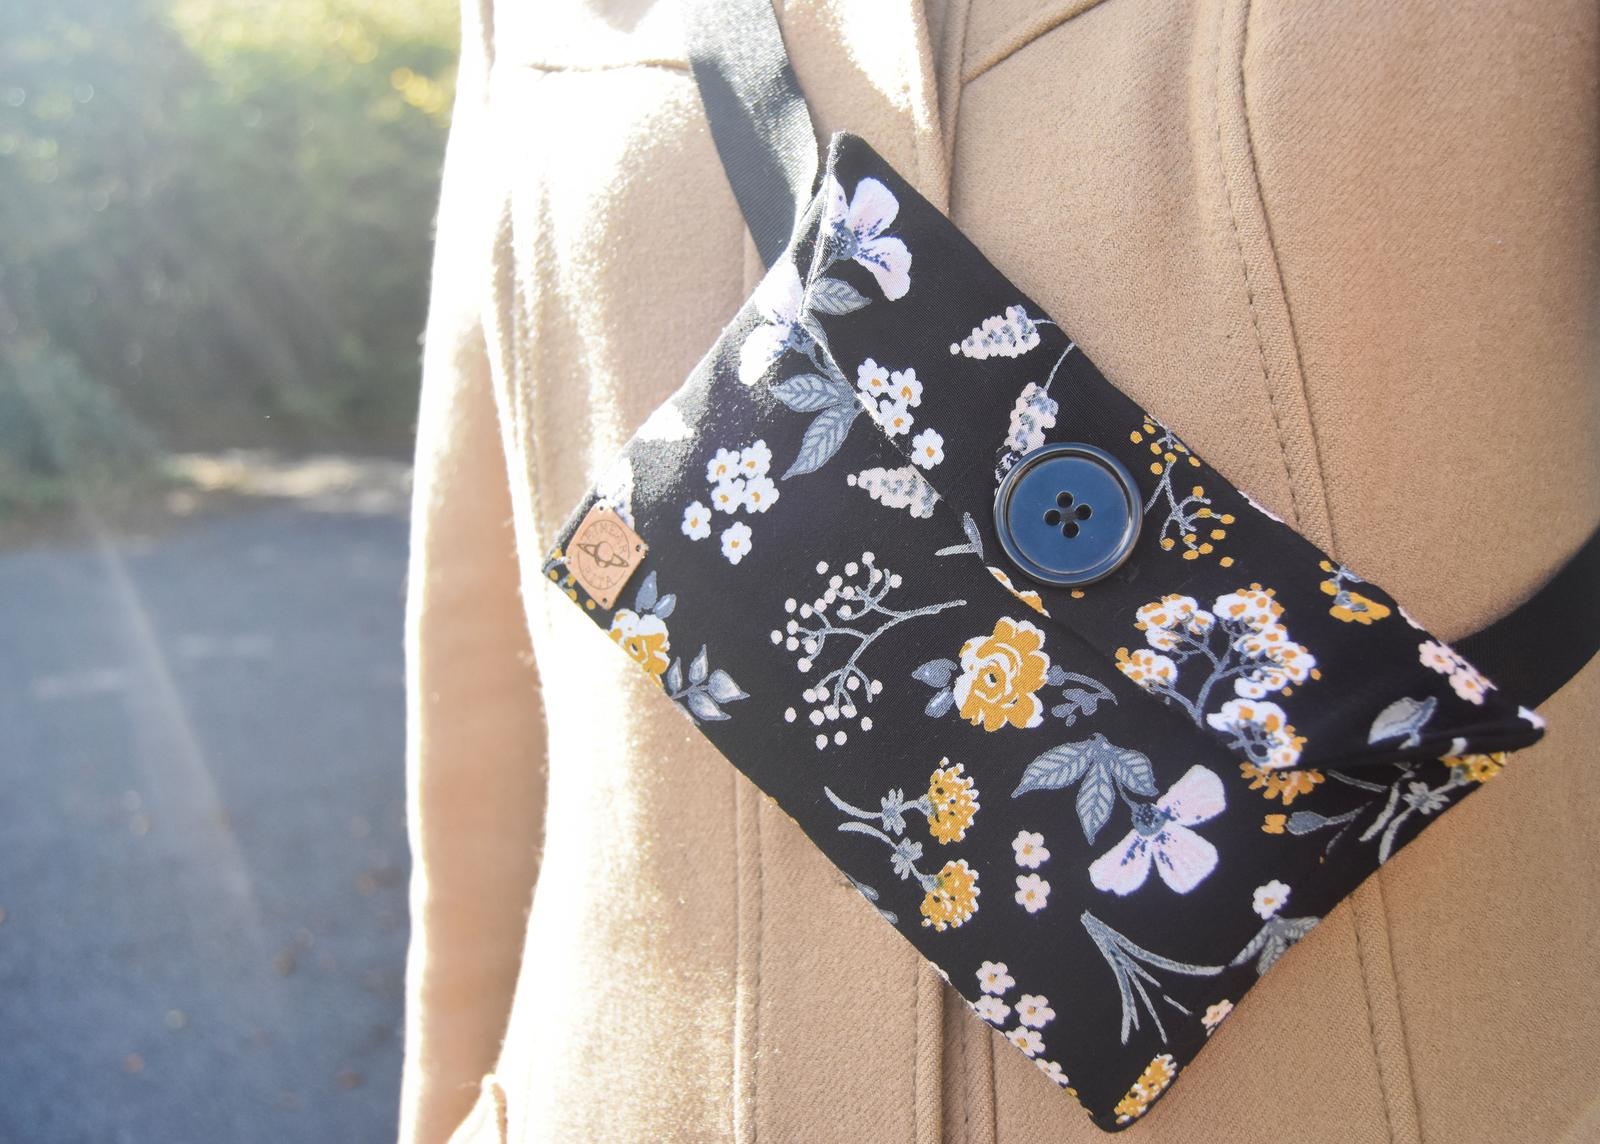 Black floral belt bag, worn cross body